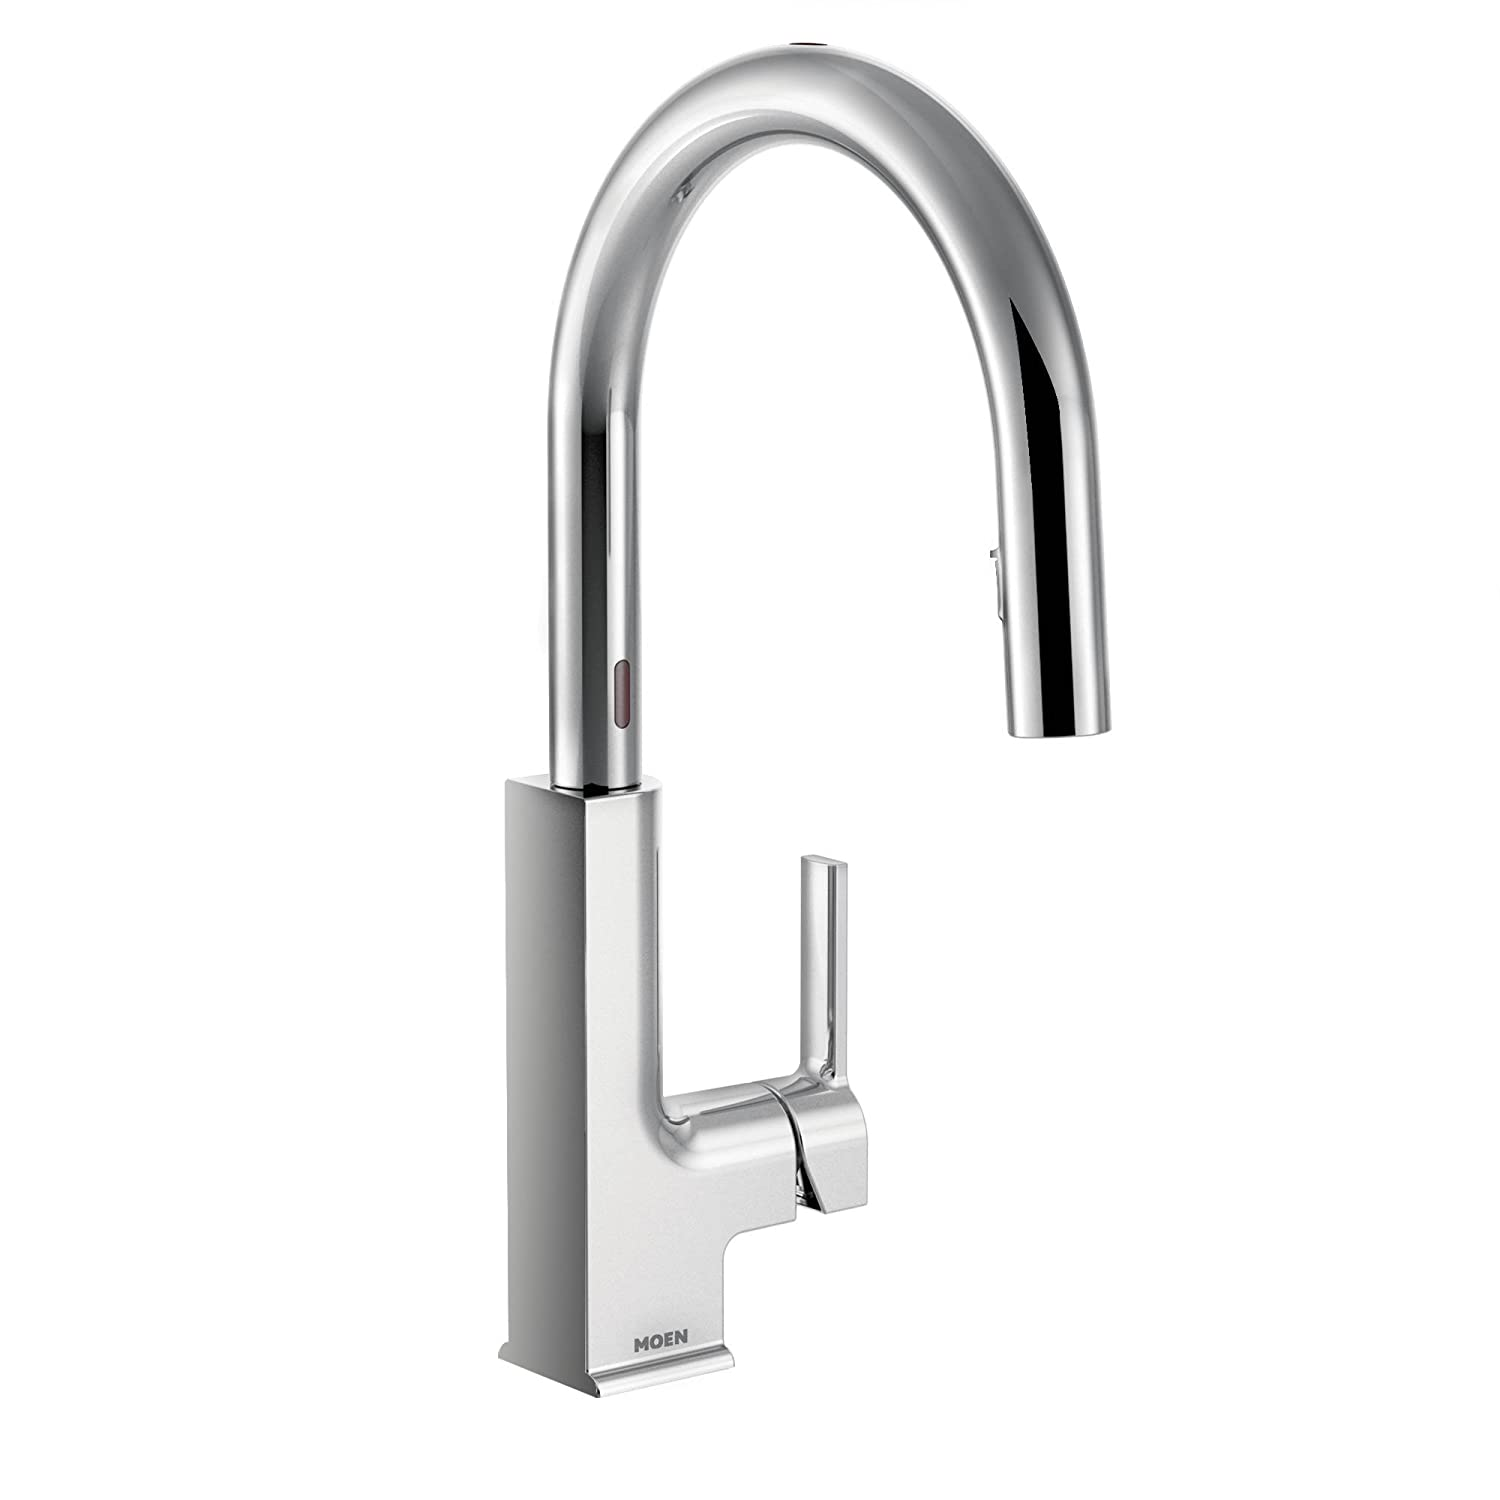 lever chrome porcelain handle faucets handles in small universal replacement faucet cross